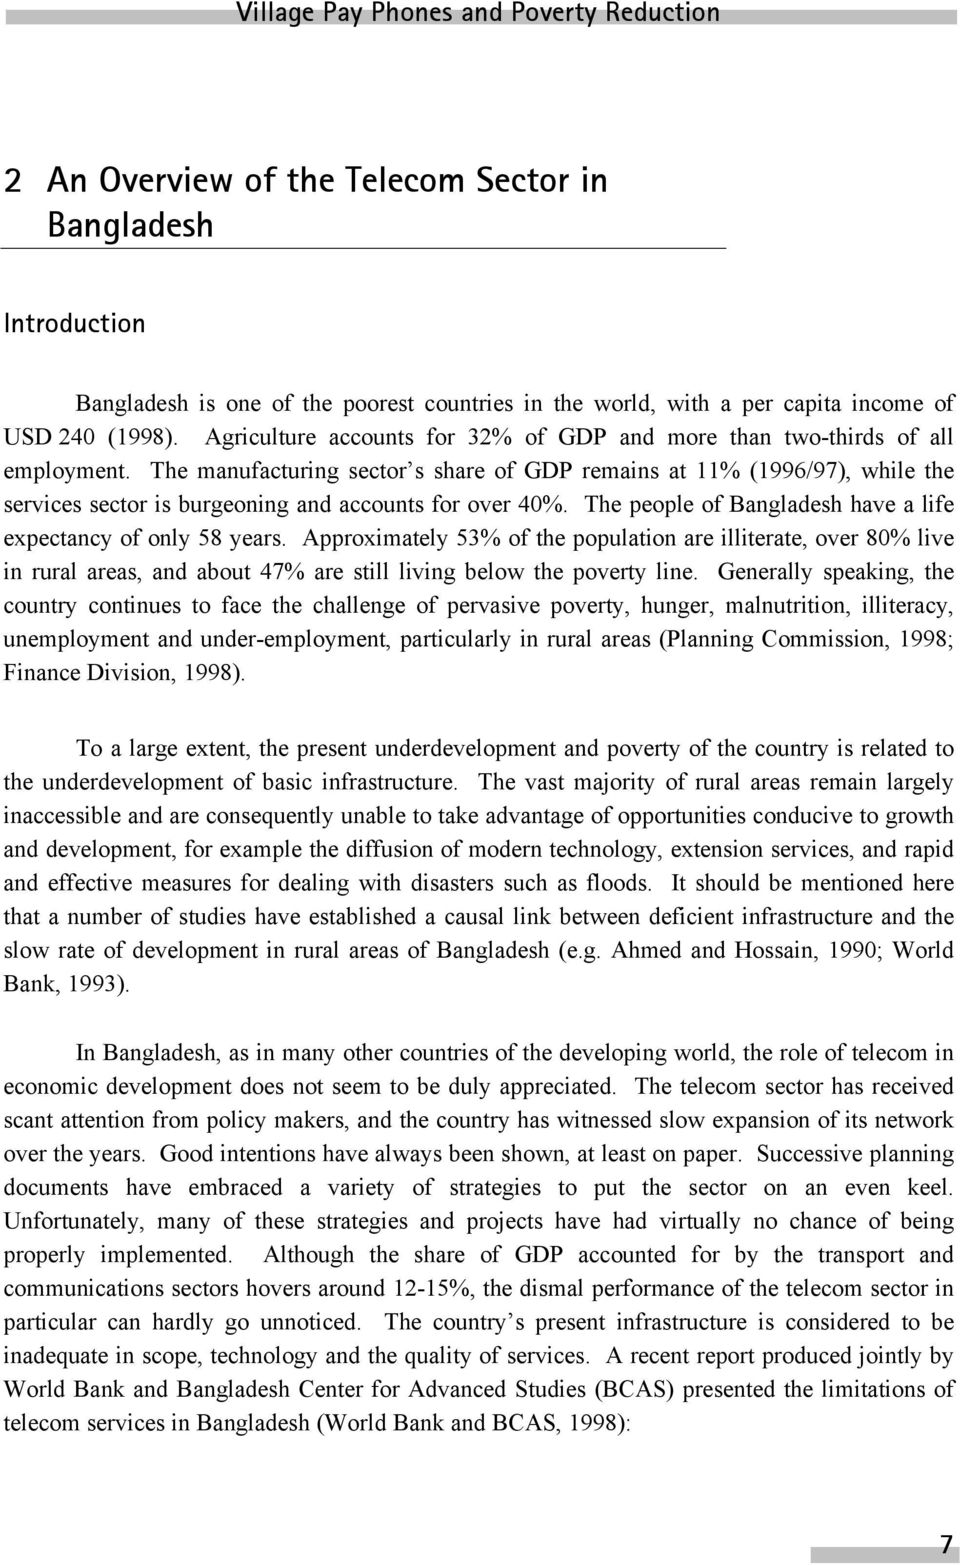 Sample Essay on Poverty